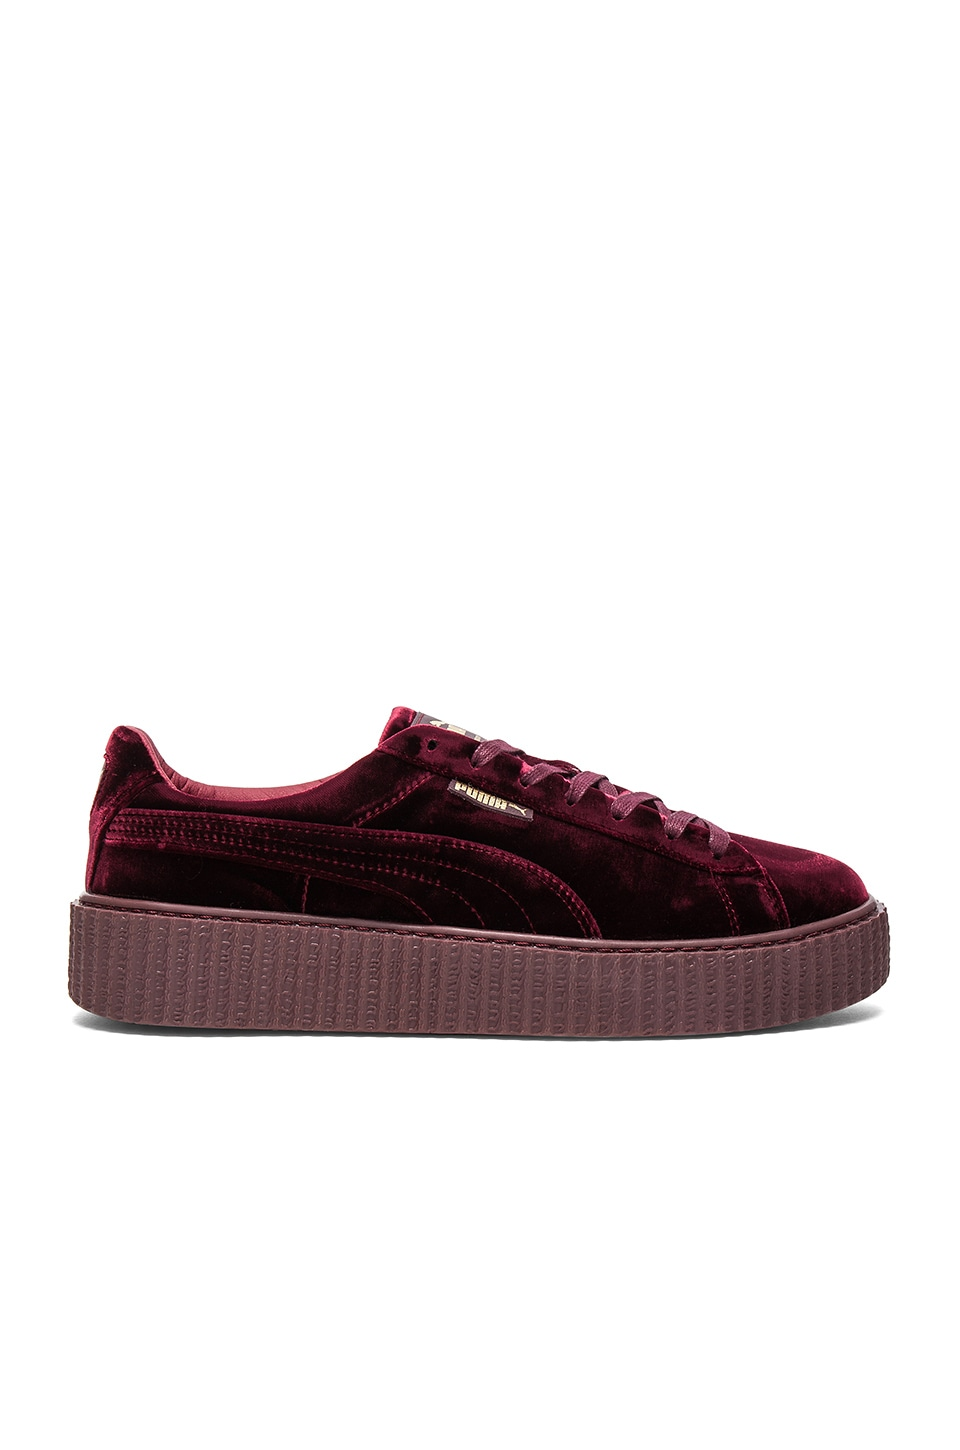 Fenty by Puma Velvet Creepers in Royal Purple